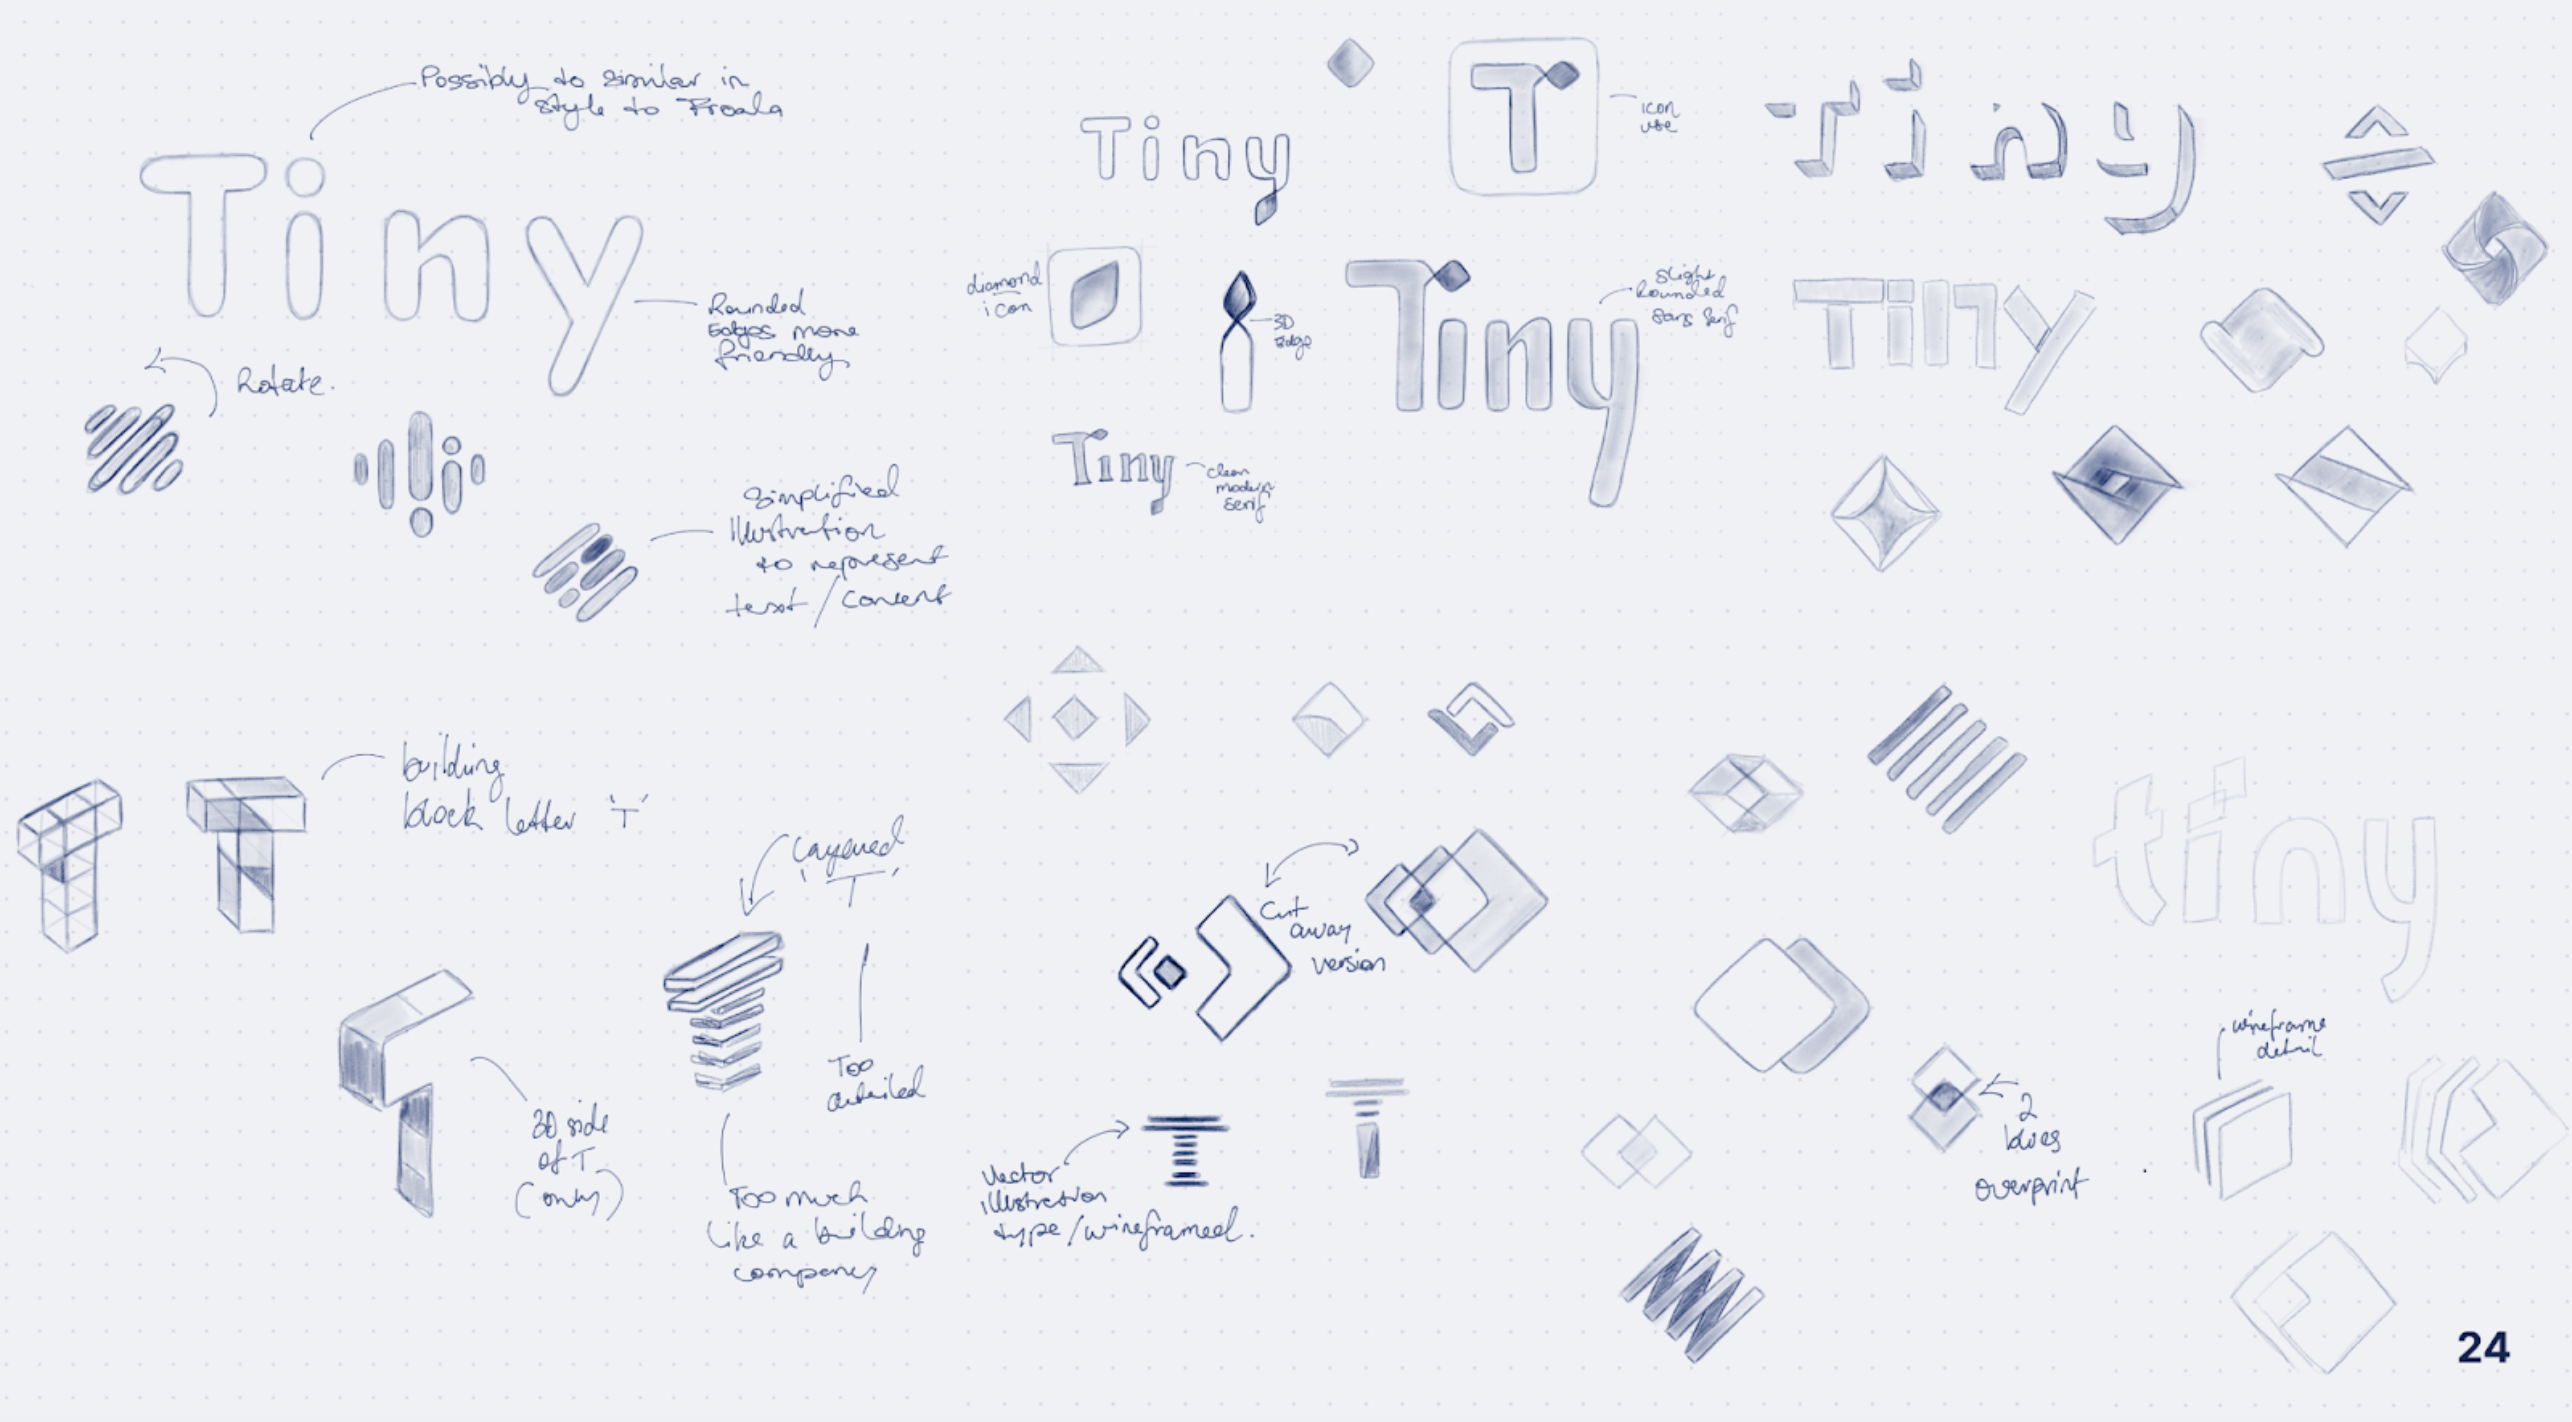 Initial logo sketches and ideas